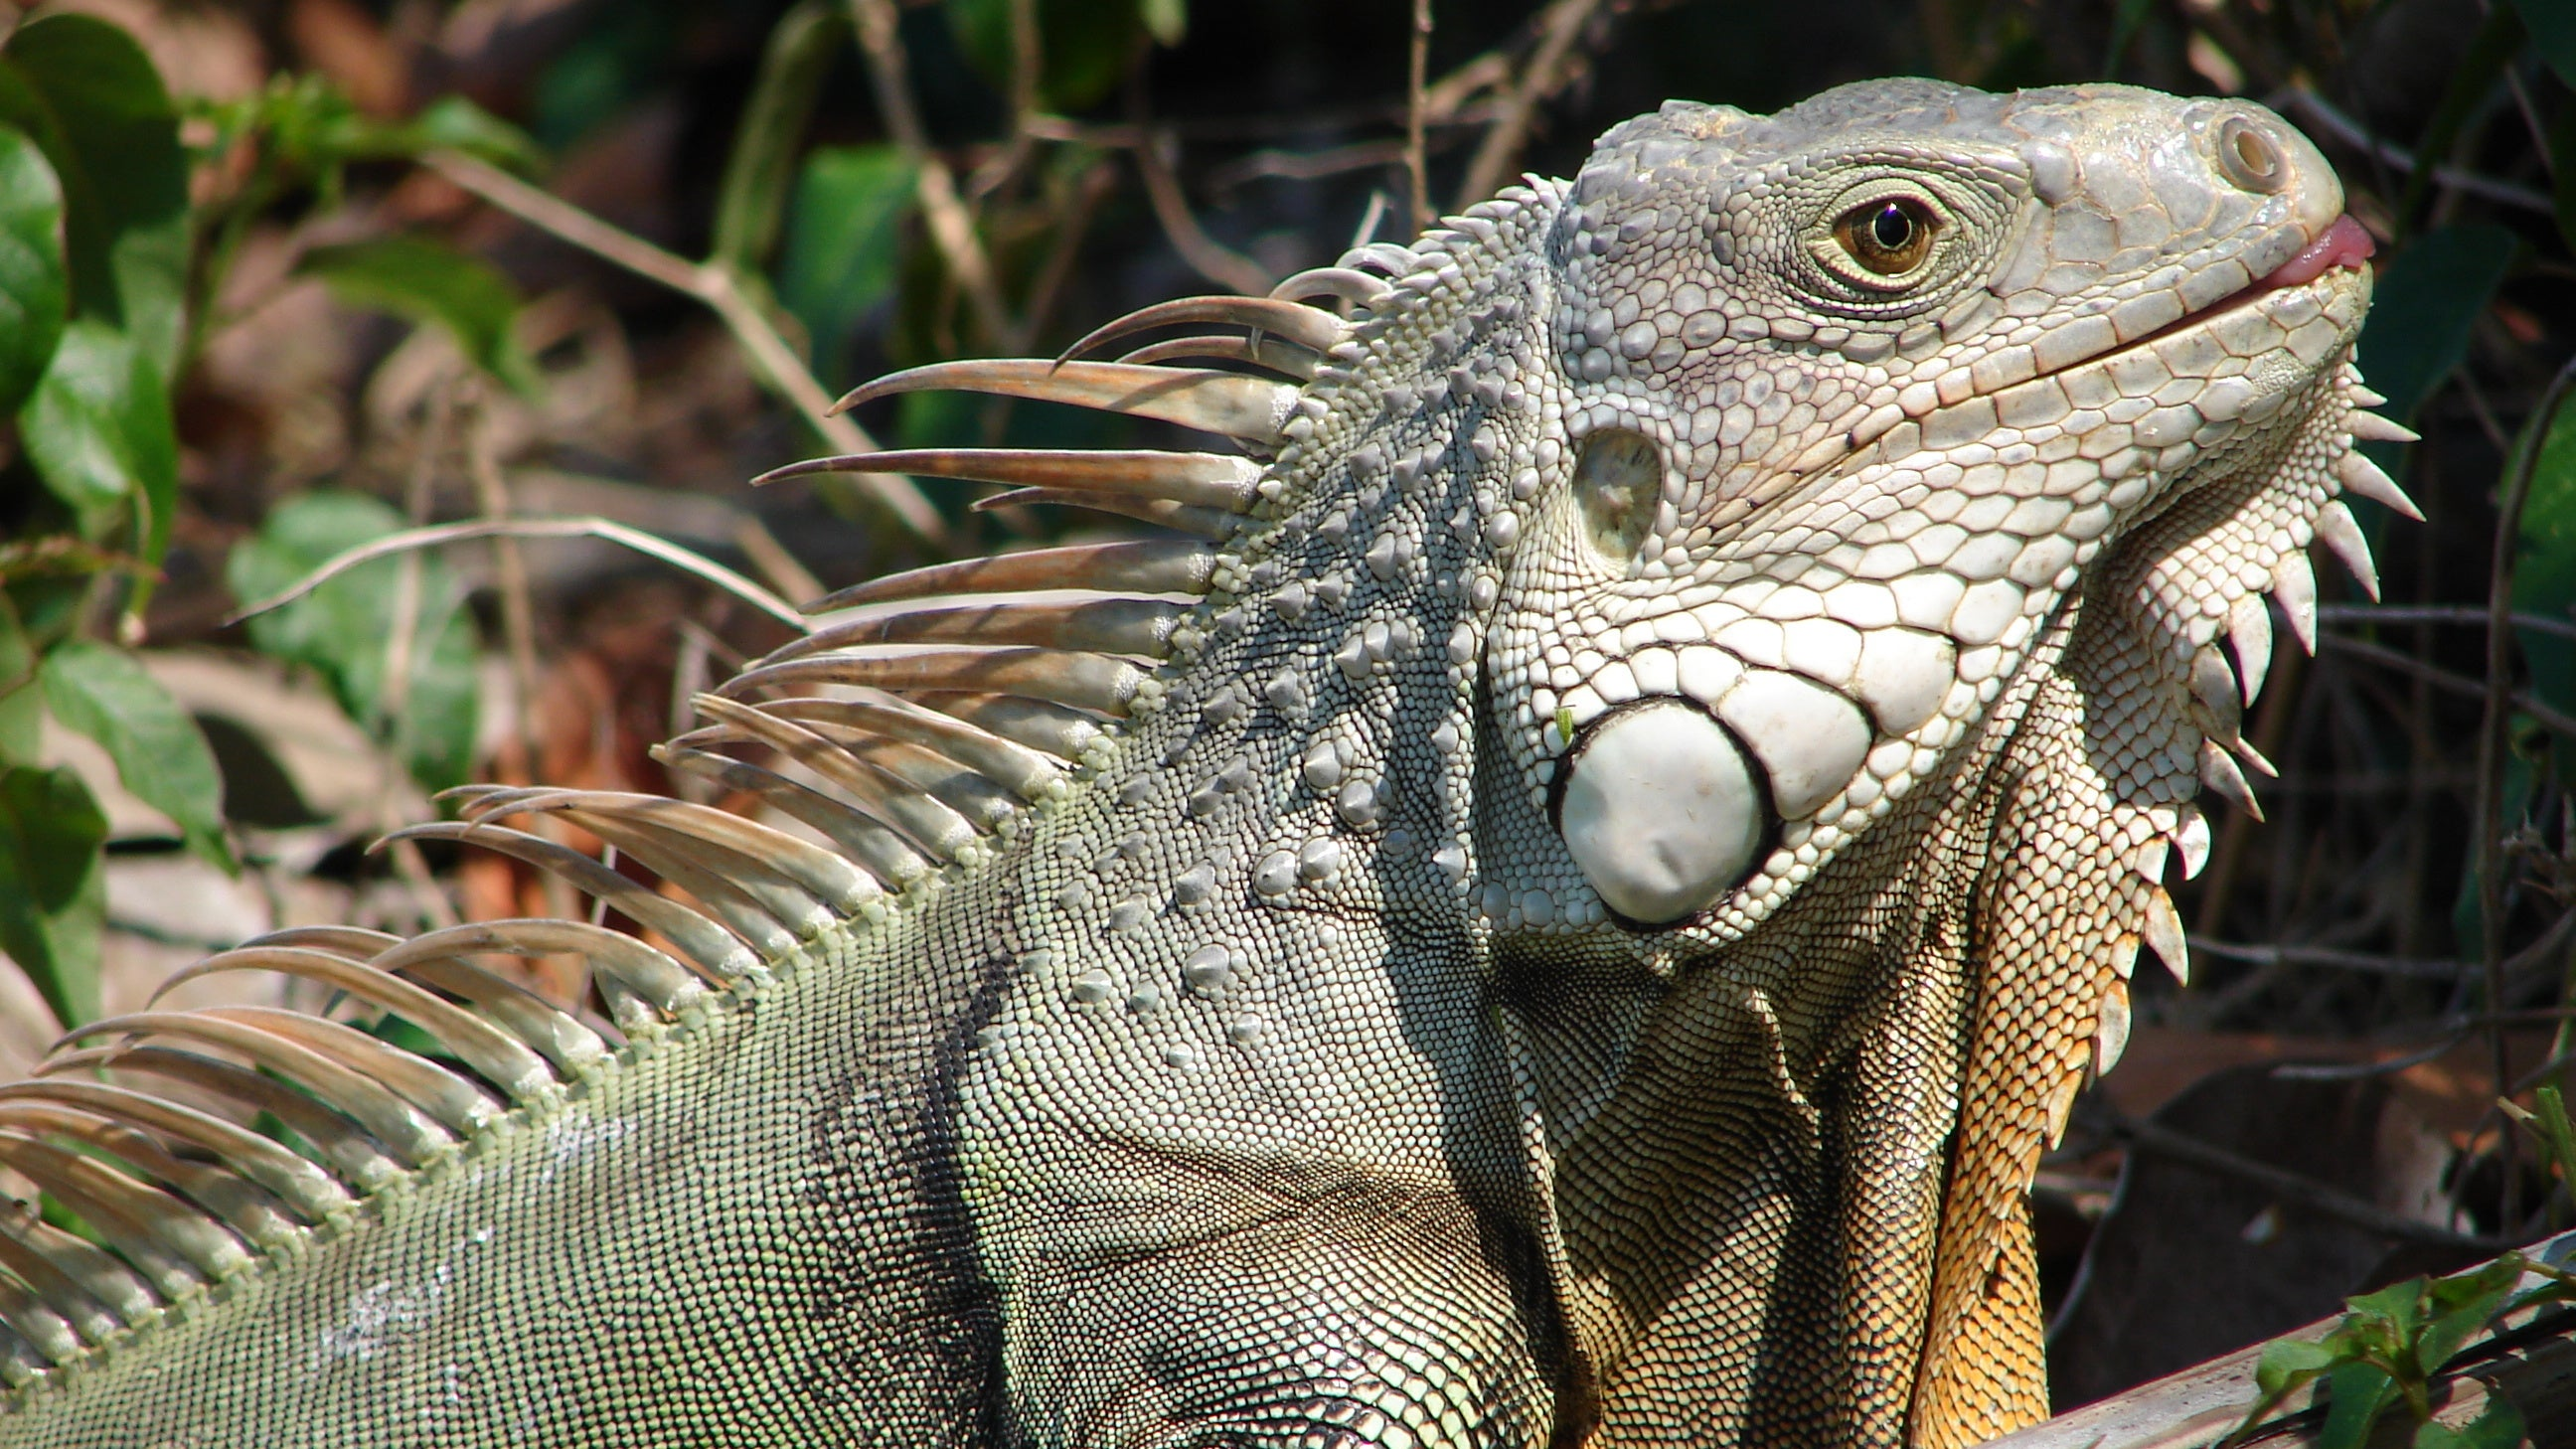 Florida Wildlife Officials Are Killing Invasive Iguanas By Smashing In Their Skulls